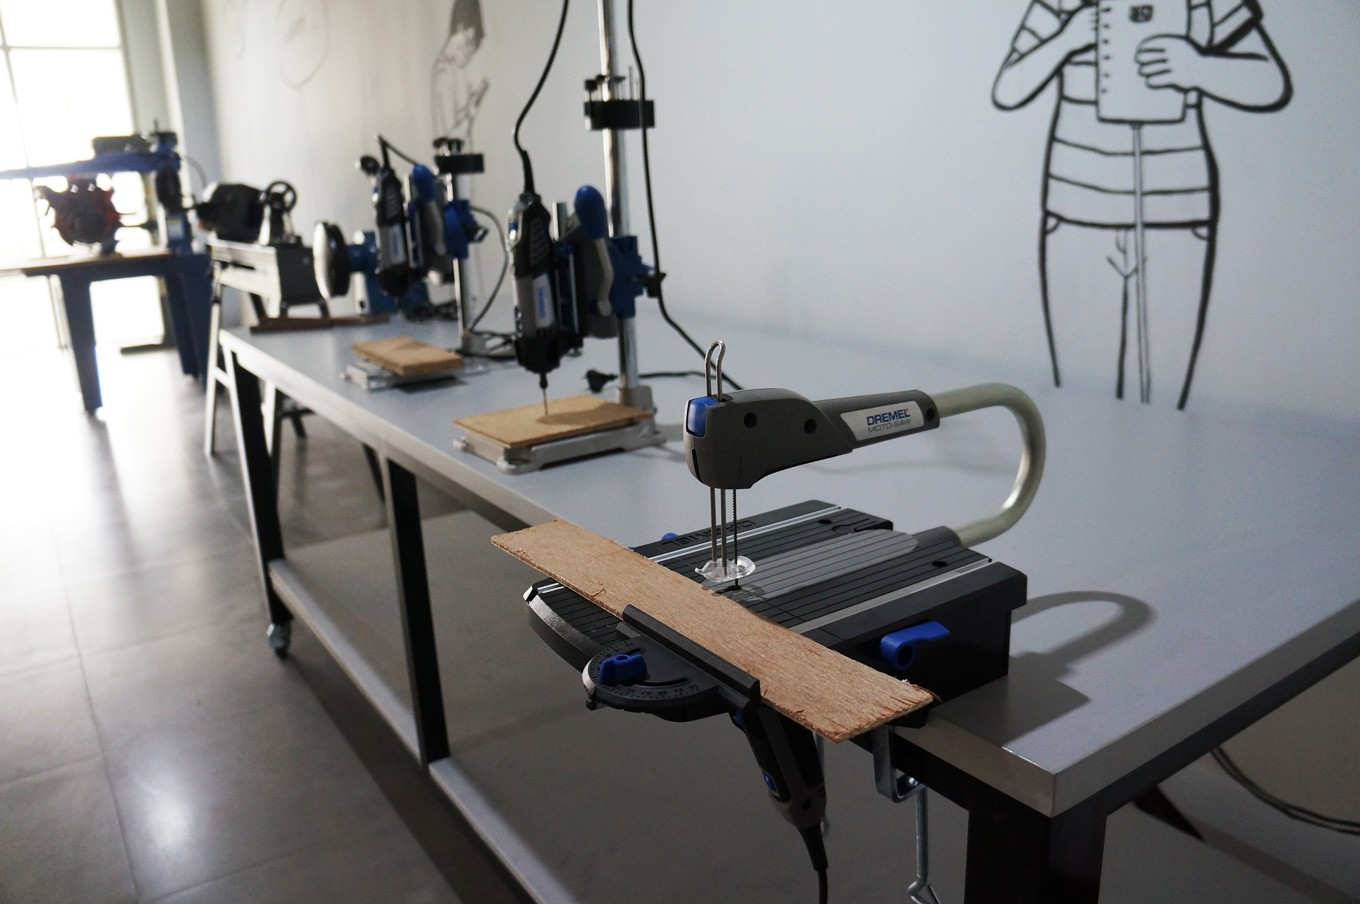 jakarta creative hub technologies like woodworking metal machinery industrial 3d printers photography and video making